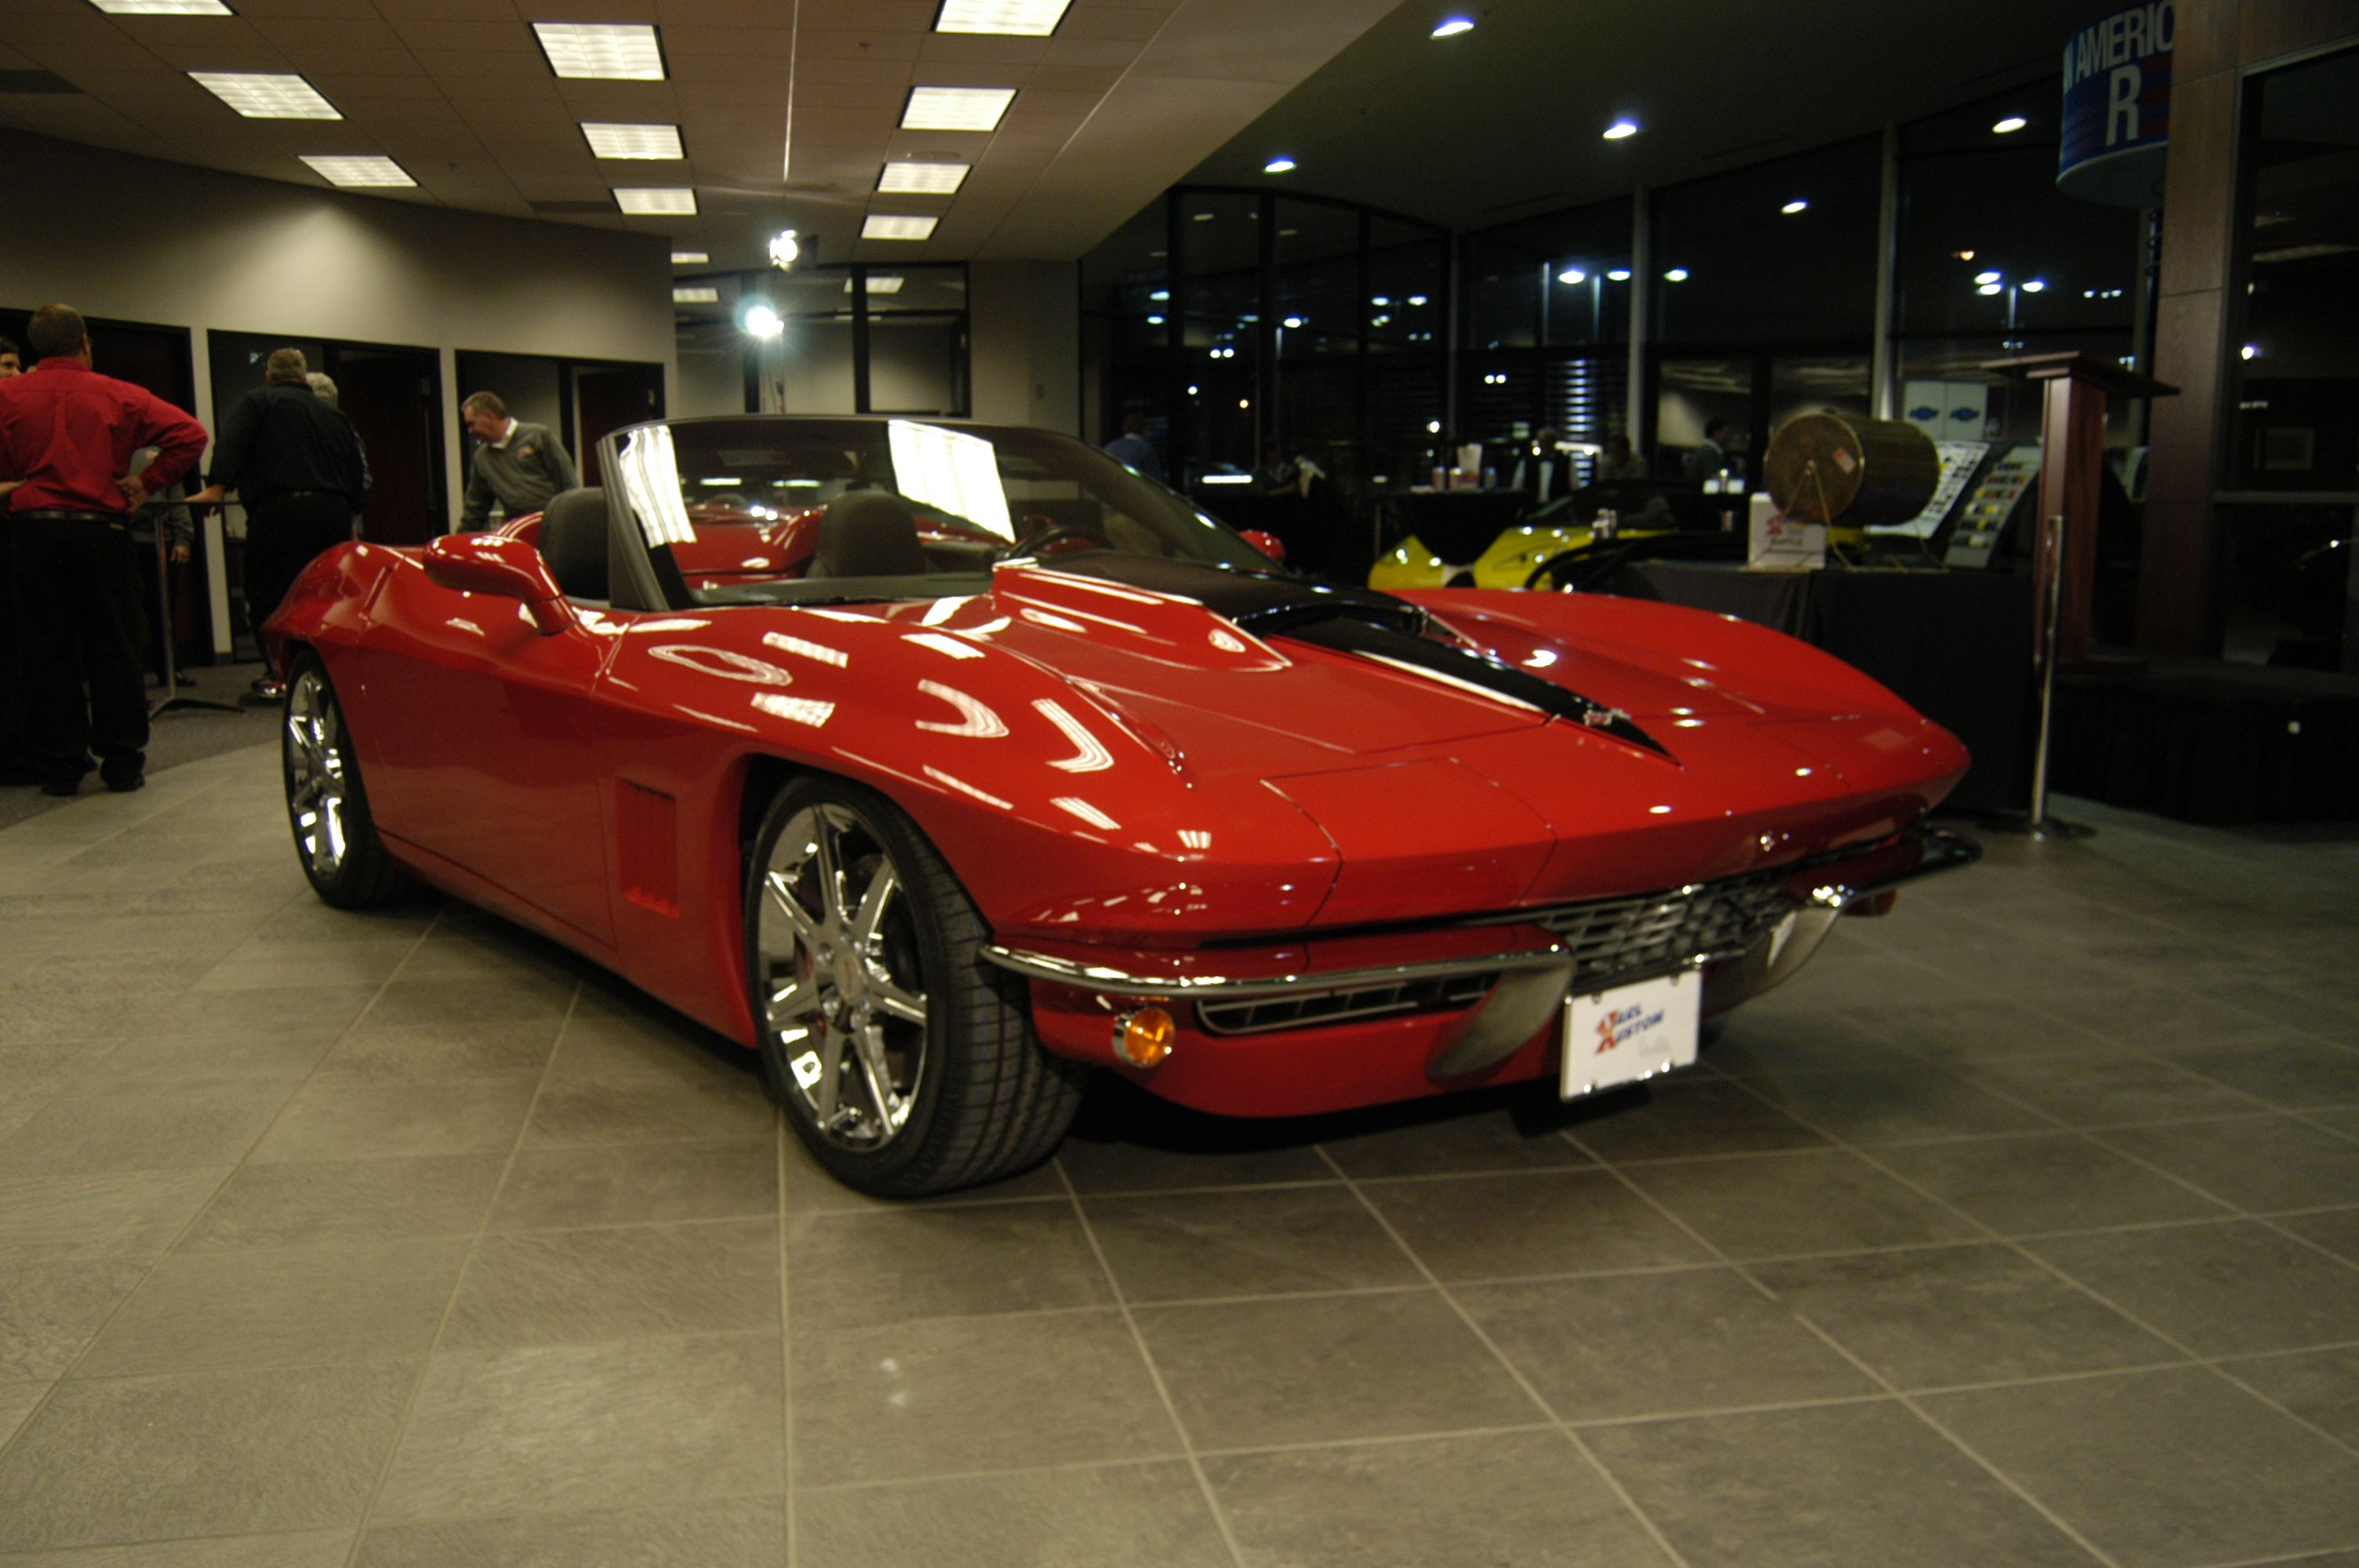 67 Vette With Images Used Car Dealer New Chevy Used Cars